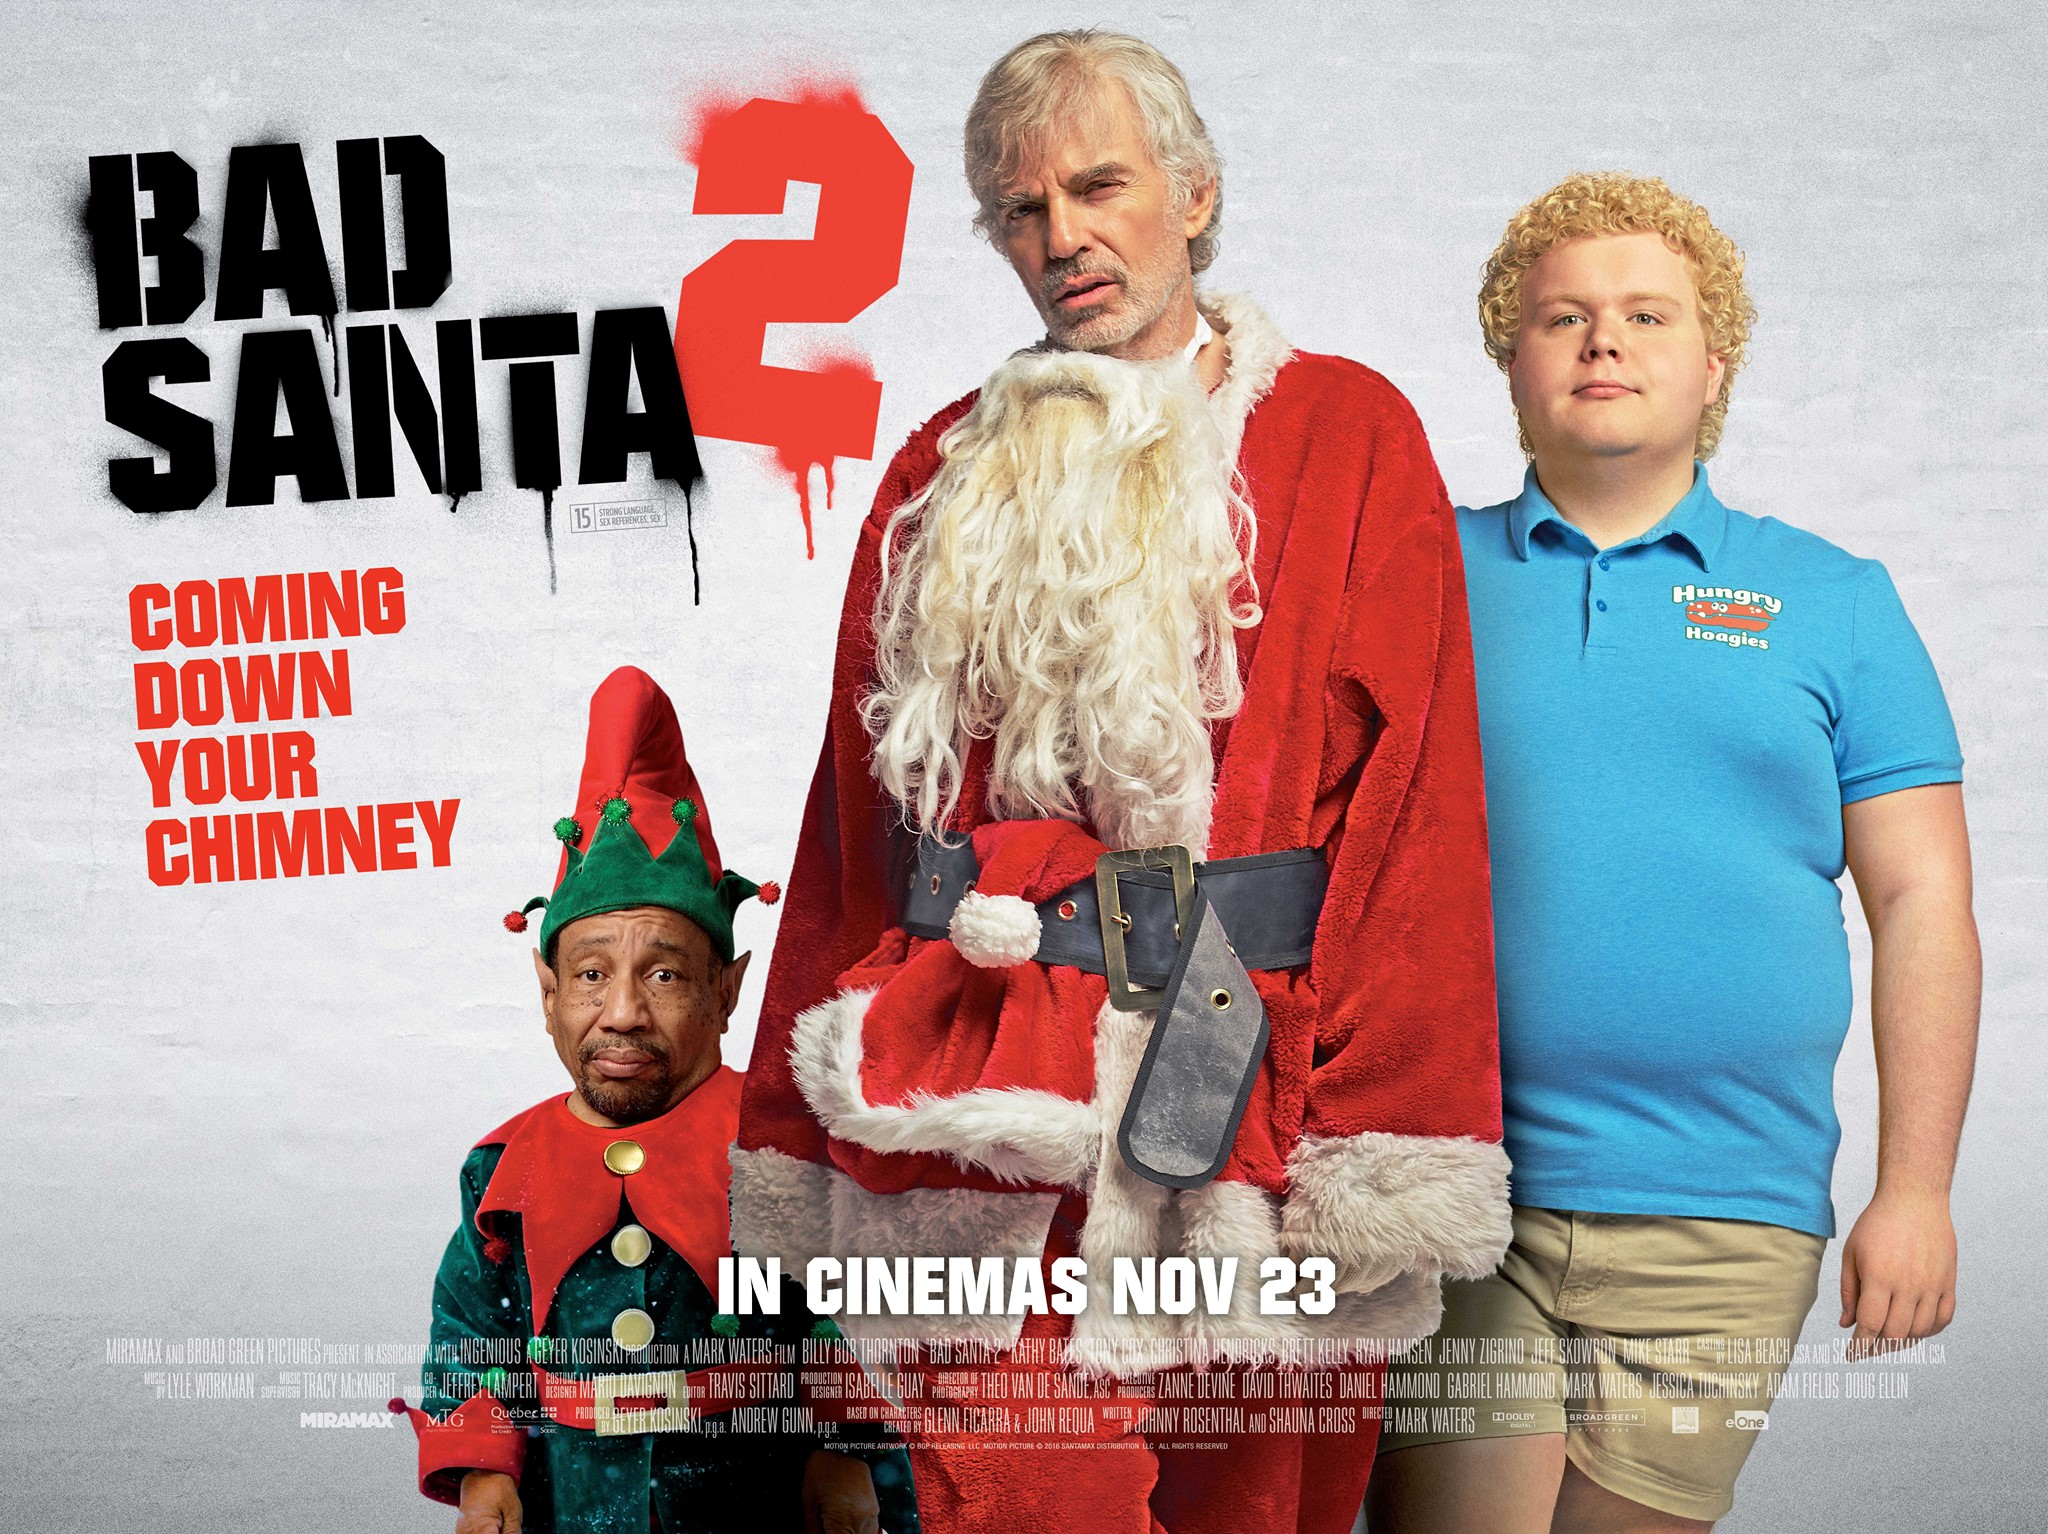 Bad Santa 2 Movie Poster And Tv Spot Teaser Trailer